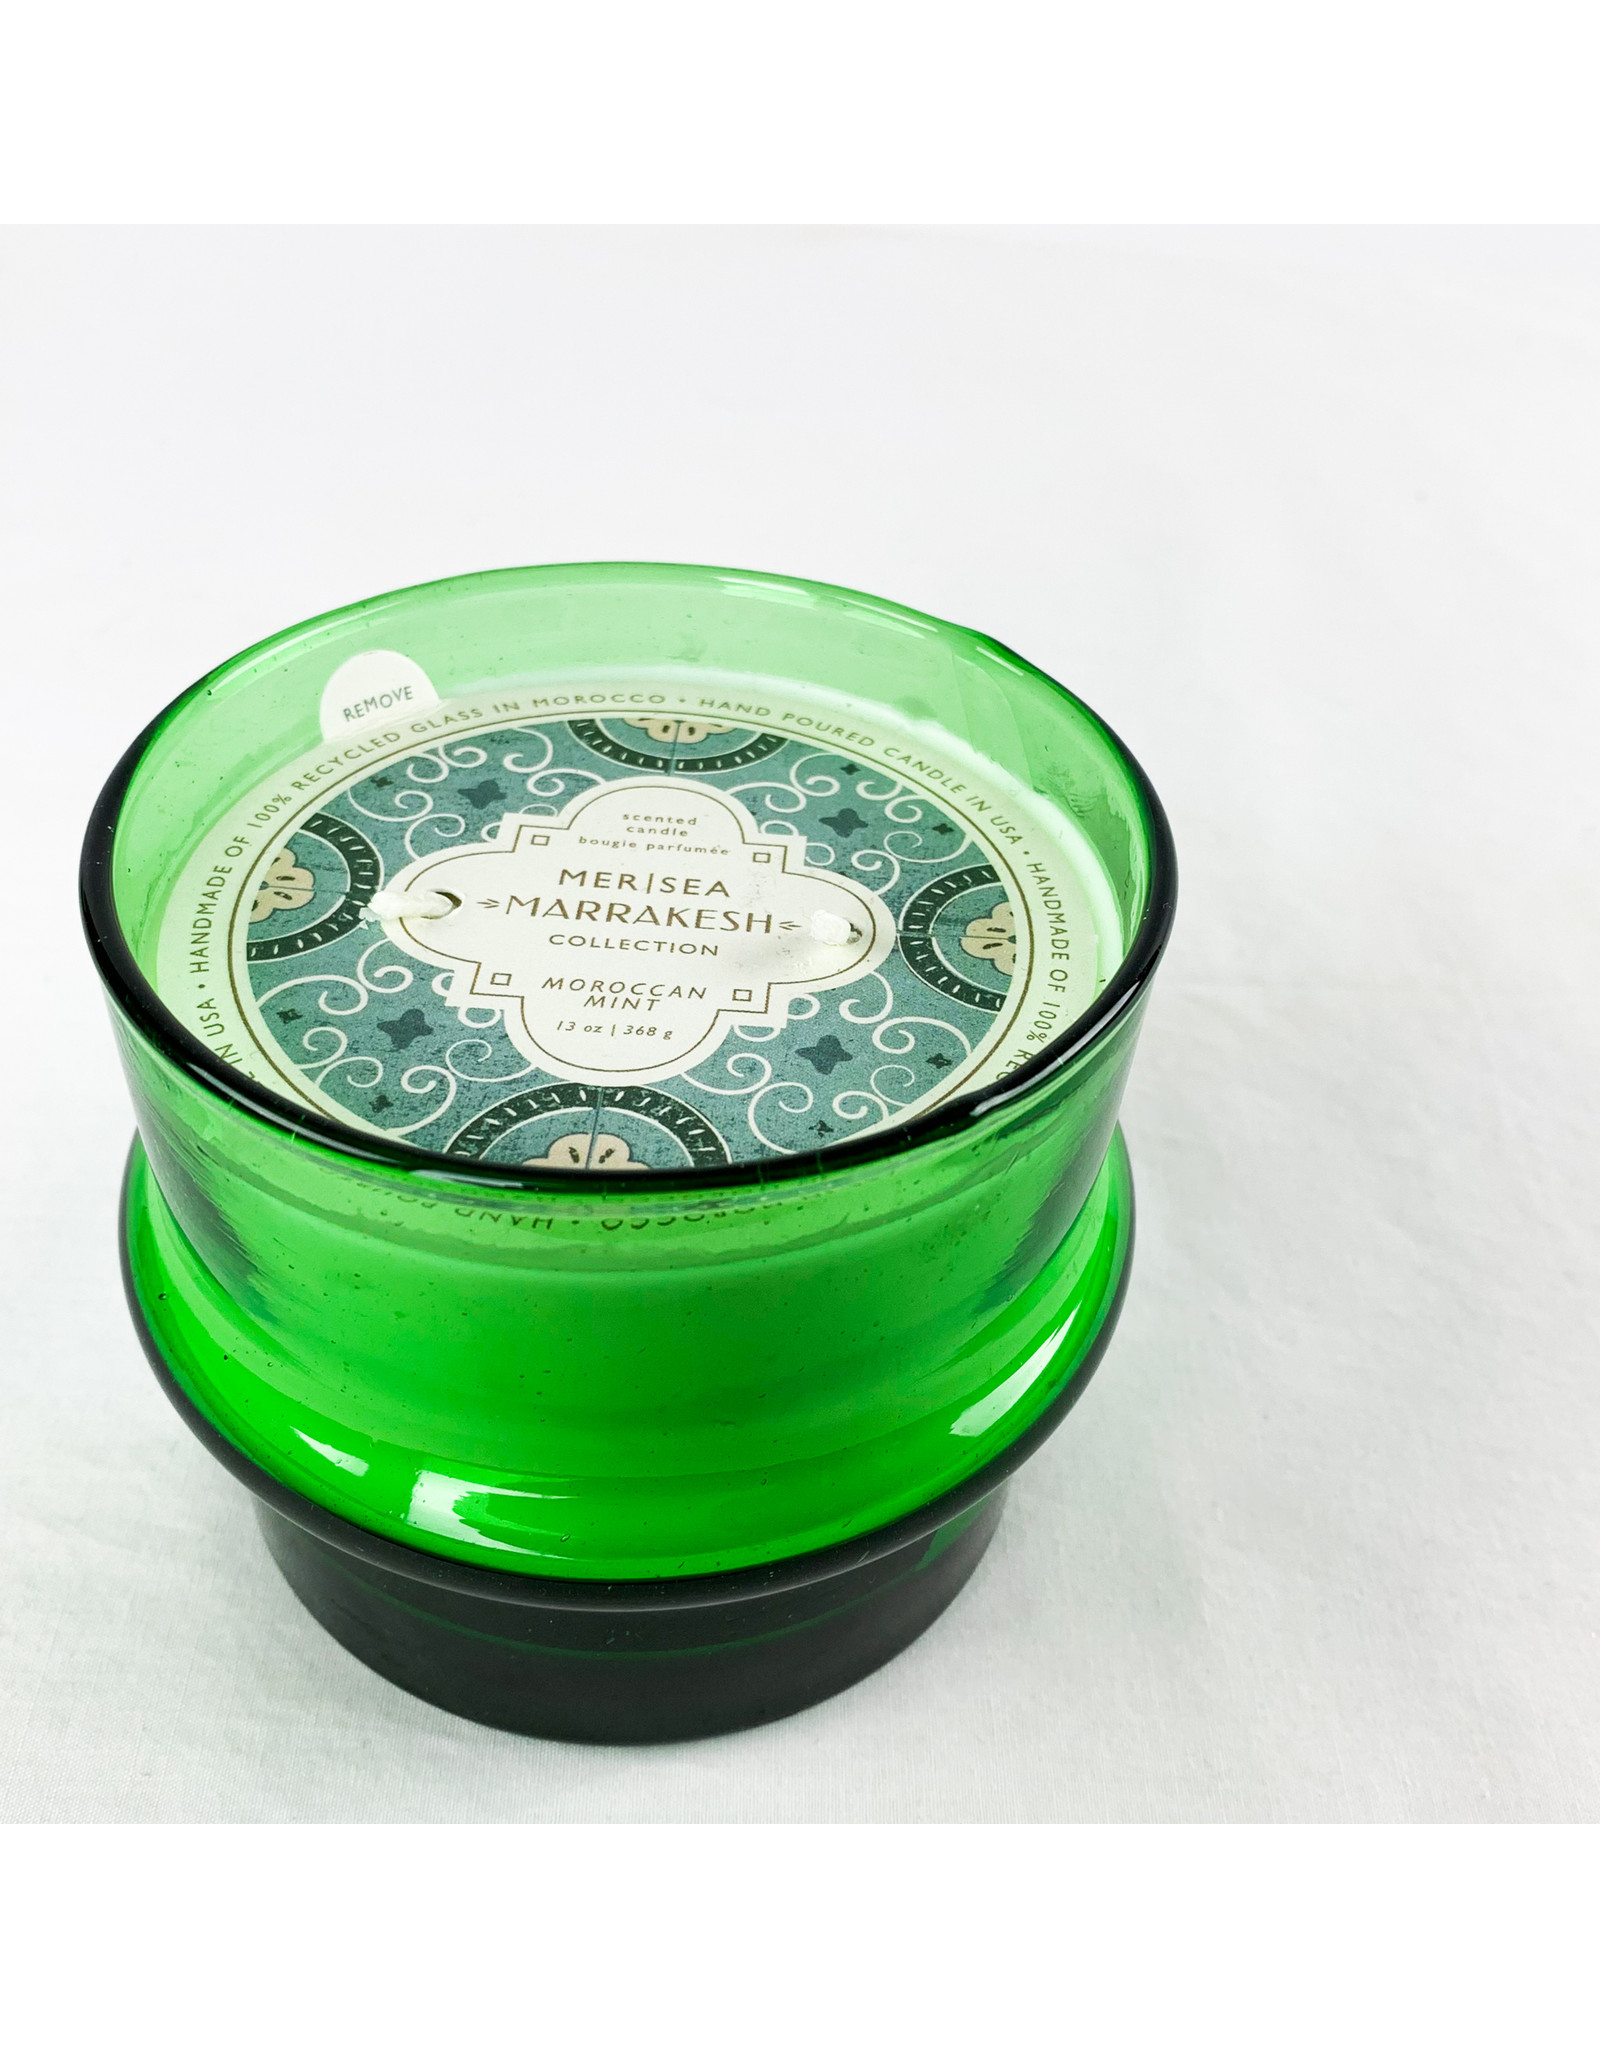 Mer Sea Moraccan Mint Large Candle